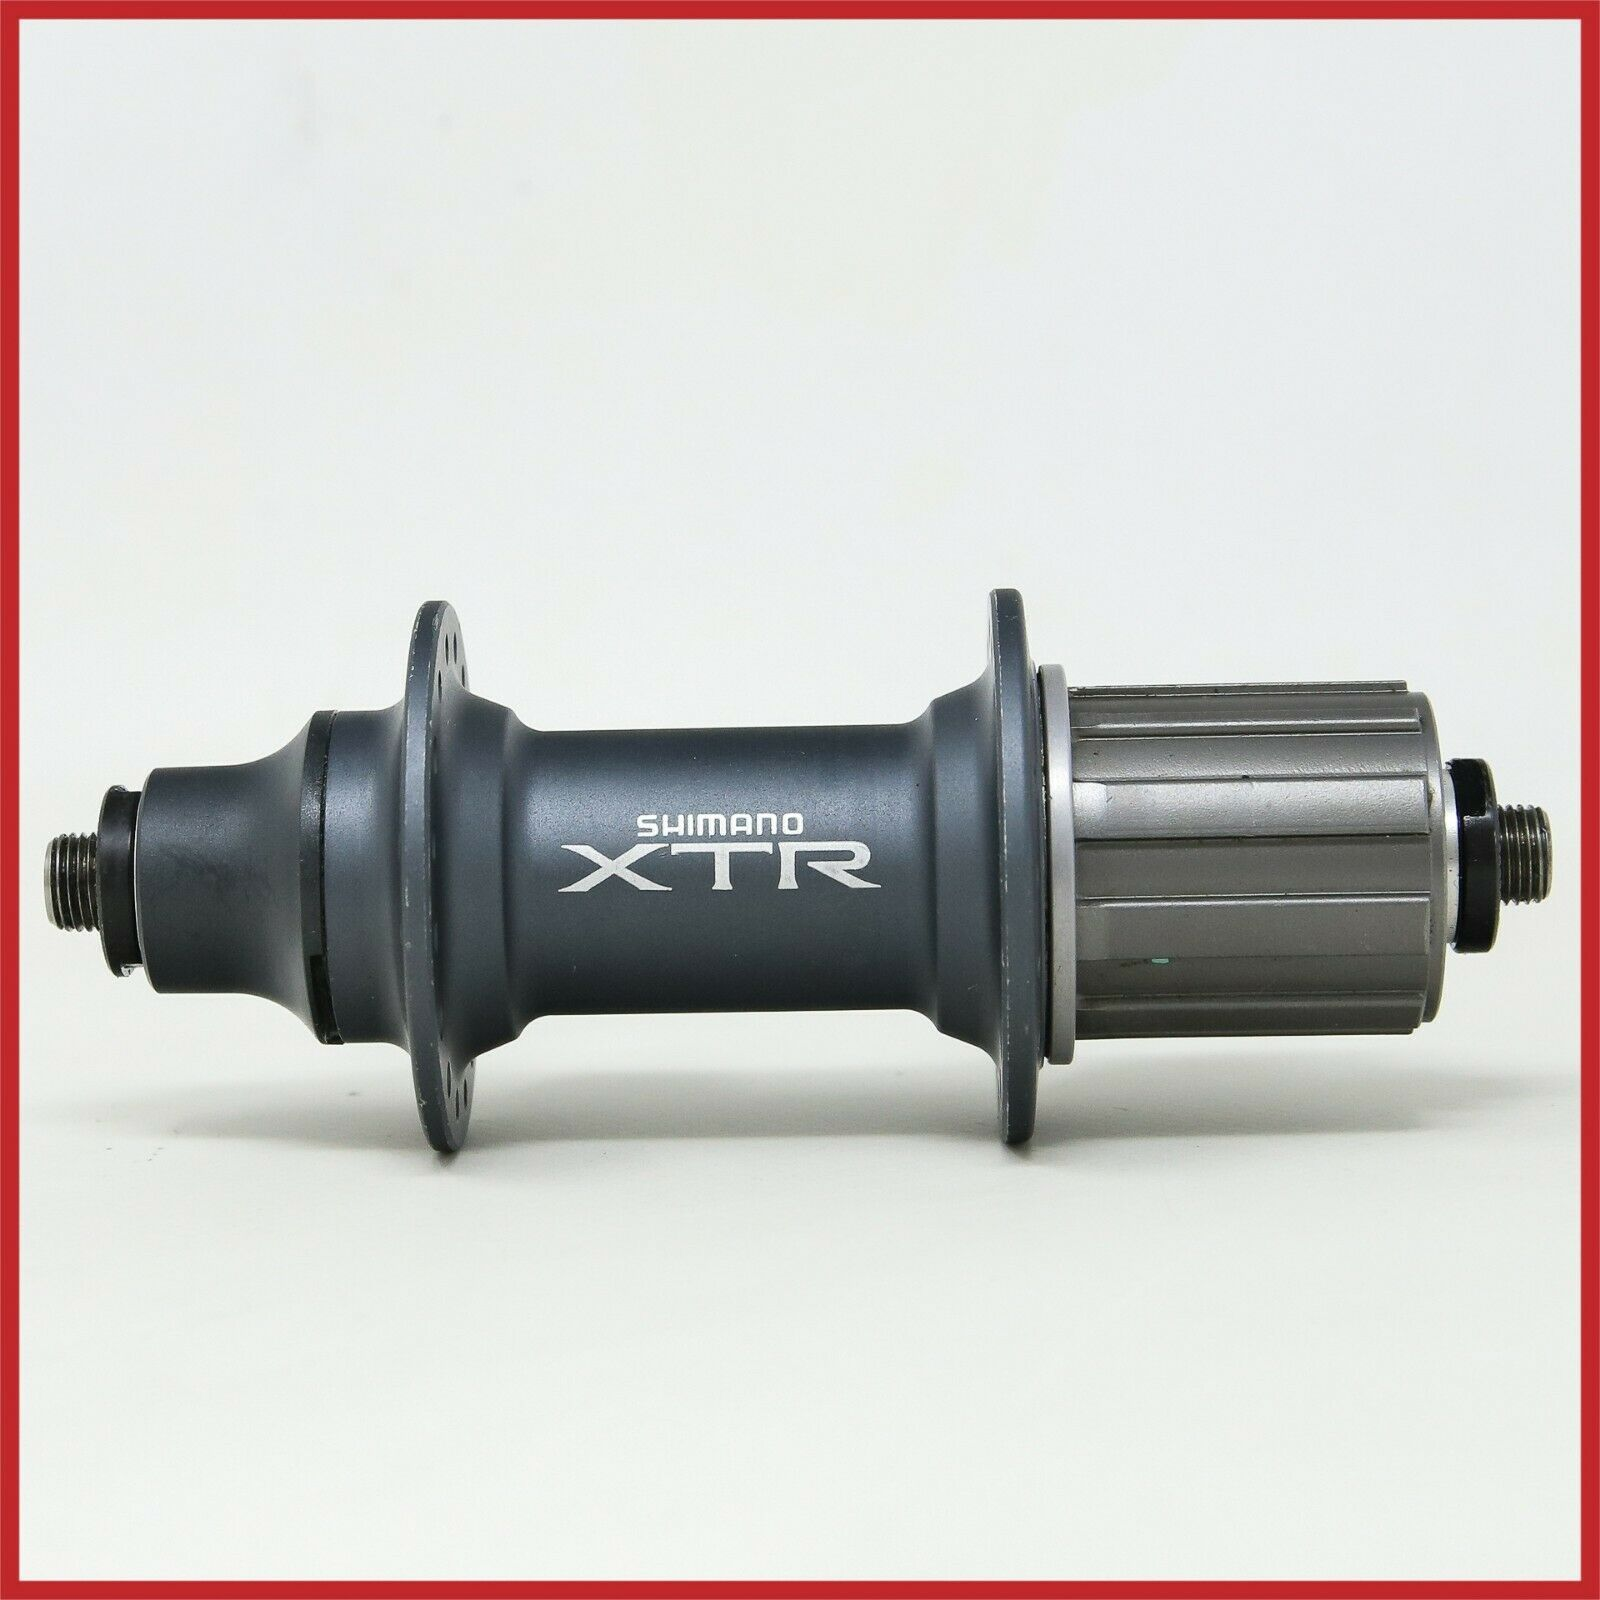 NOS SHIMANO XTR FHM950 32h HOLES 90s 8s SPEED REAR HUB VINTAGE MOUNTAIN BIKE